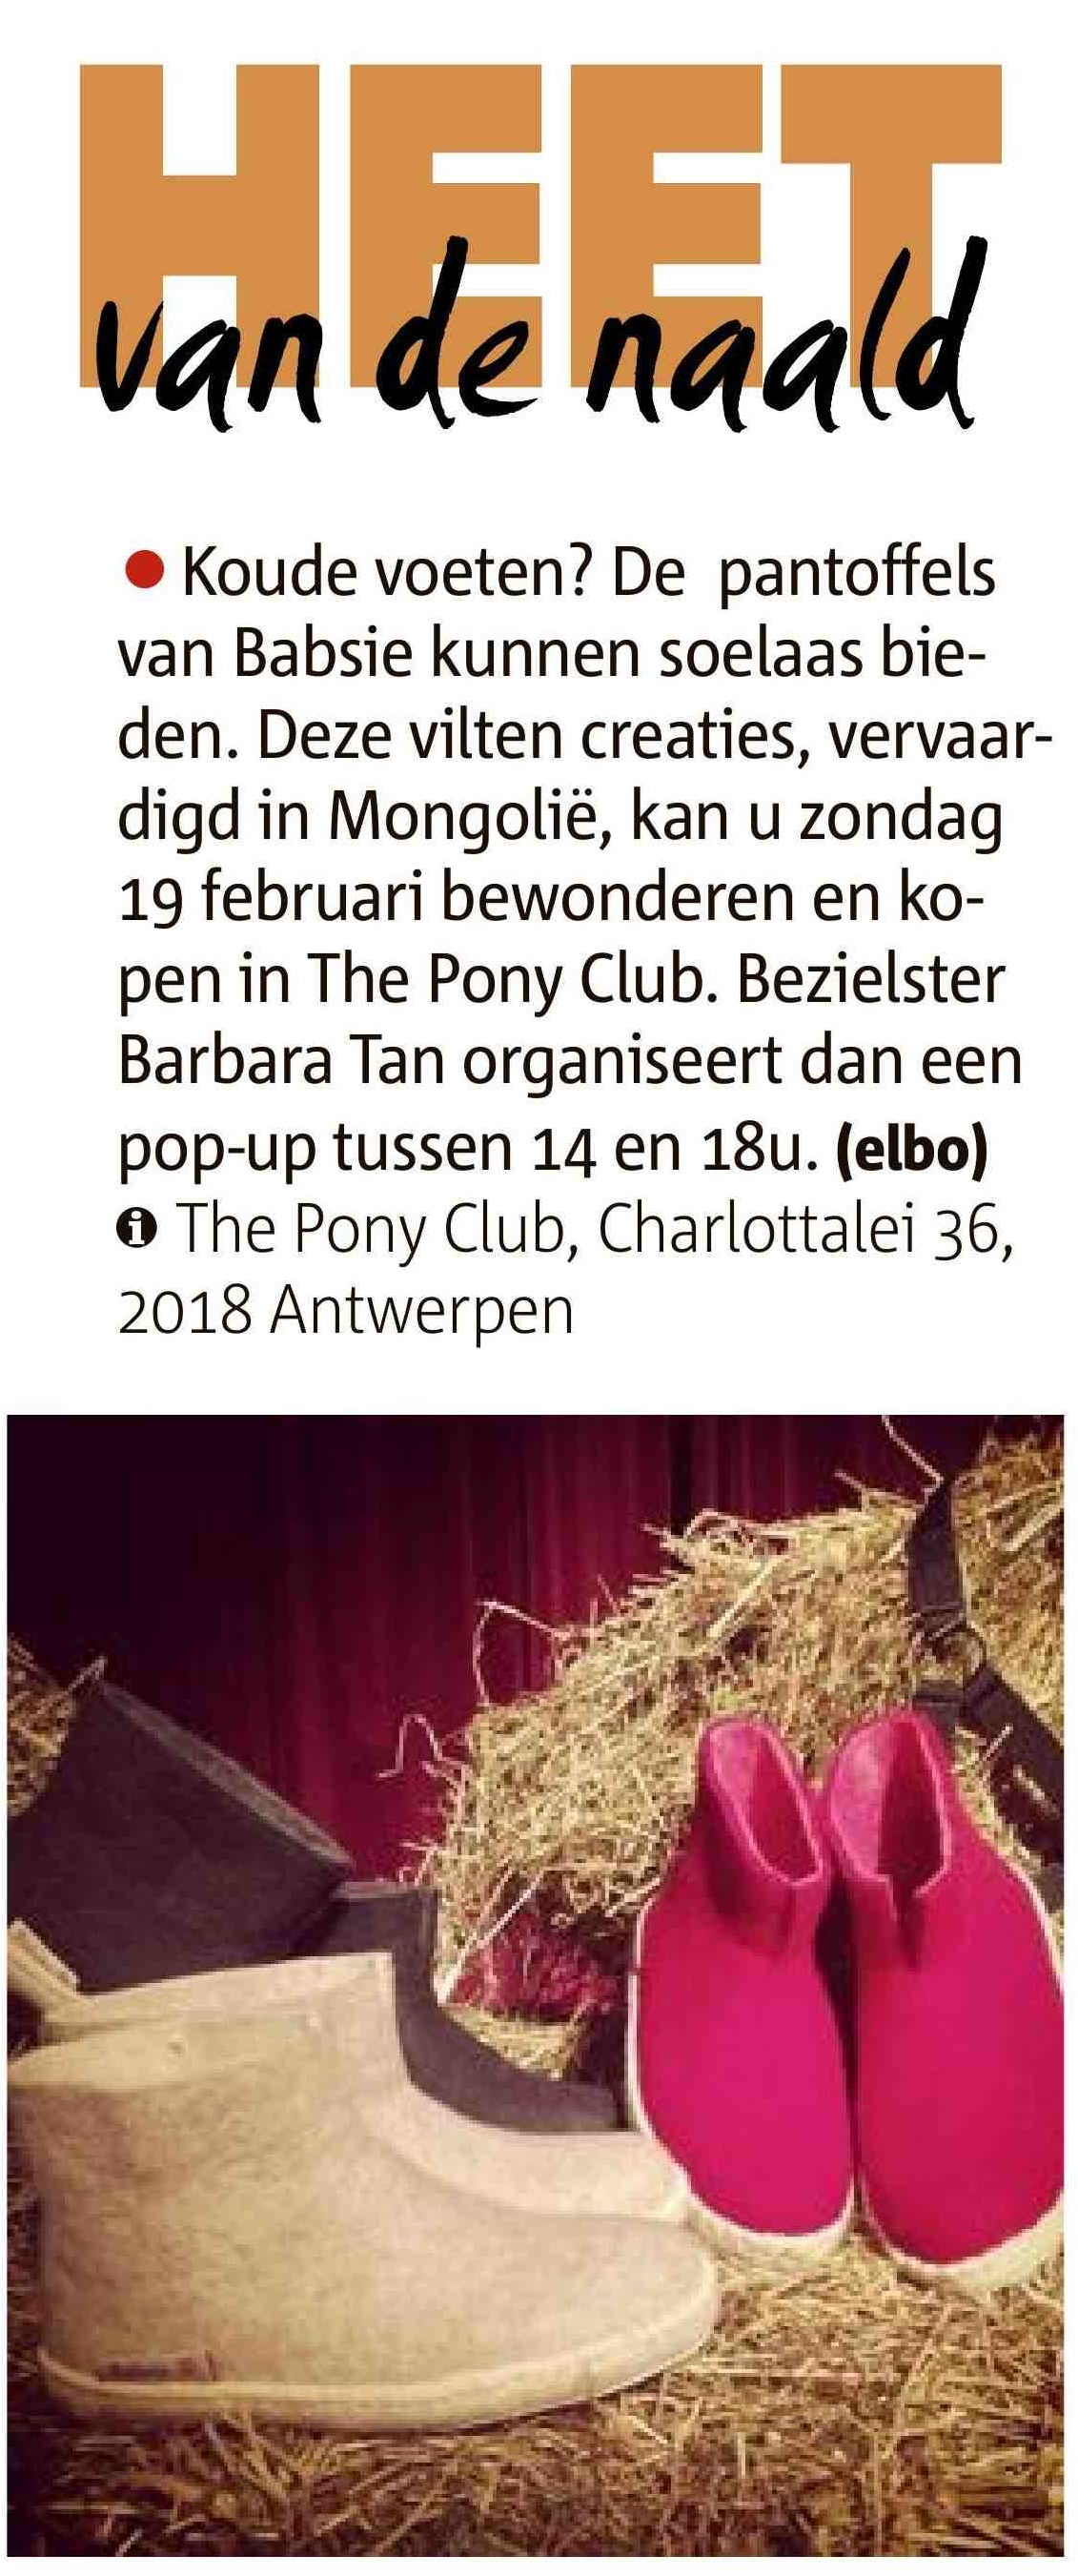 Babsie POP UP Pony Club